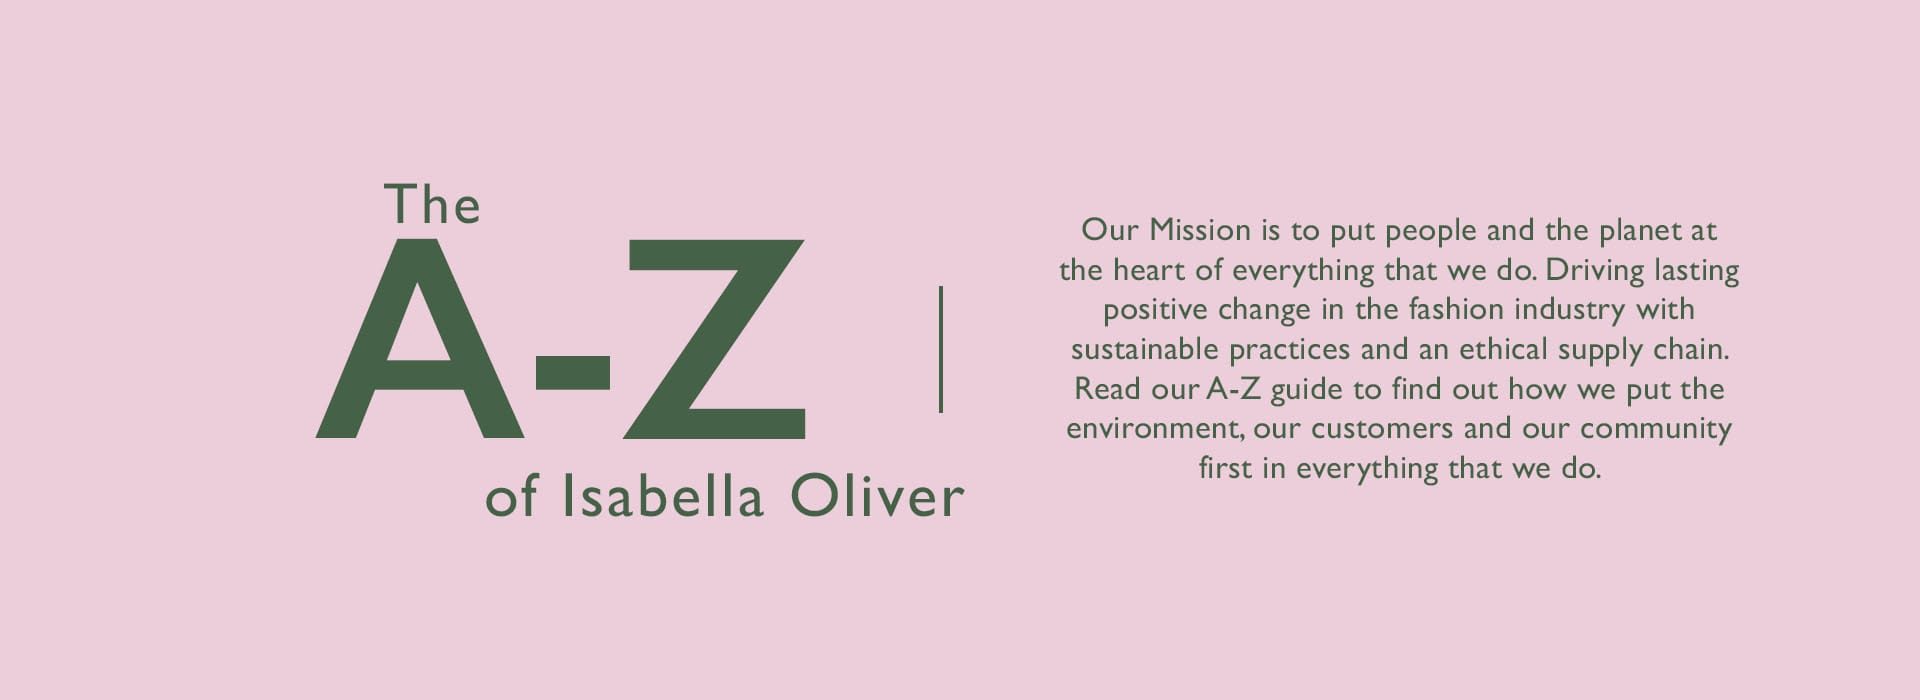 The A-Z guide to Isabella Oliver